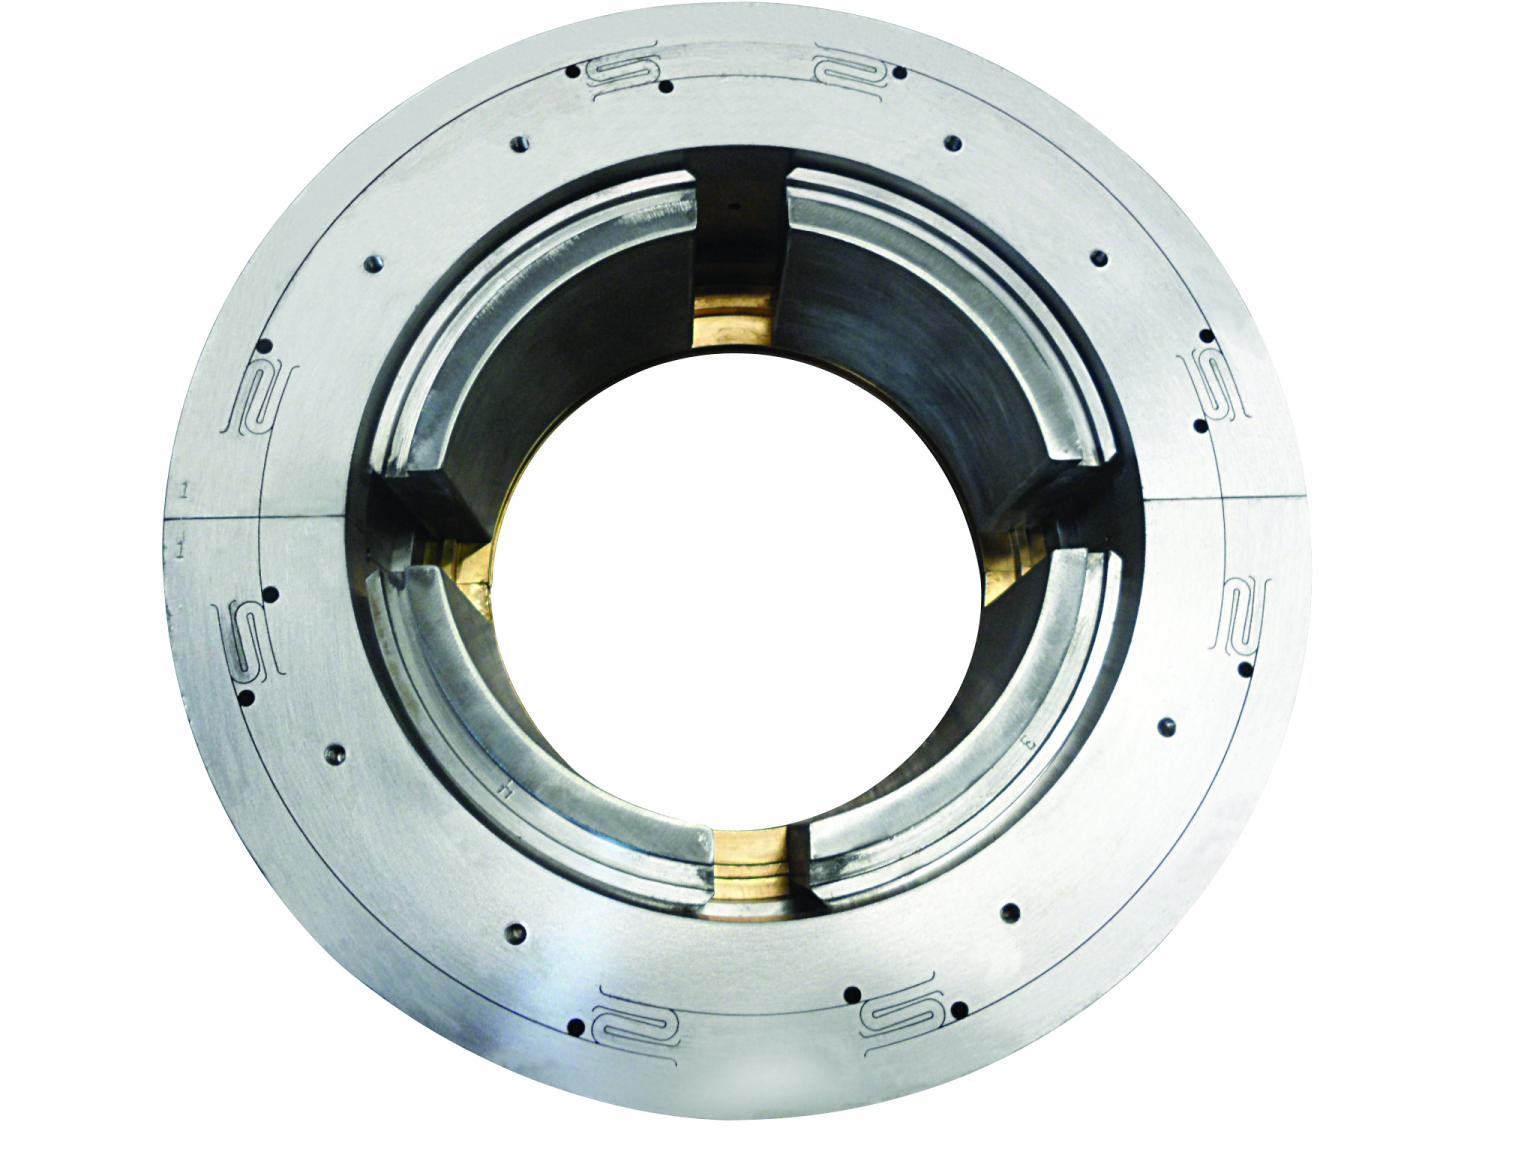 4-pad tilt pad journal bearing with ISFD technology